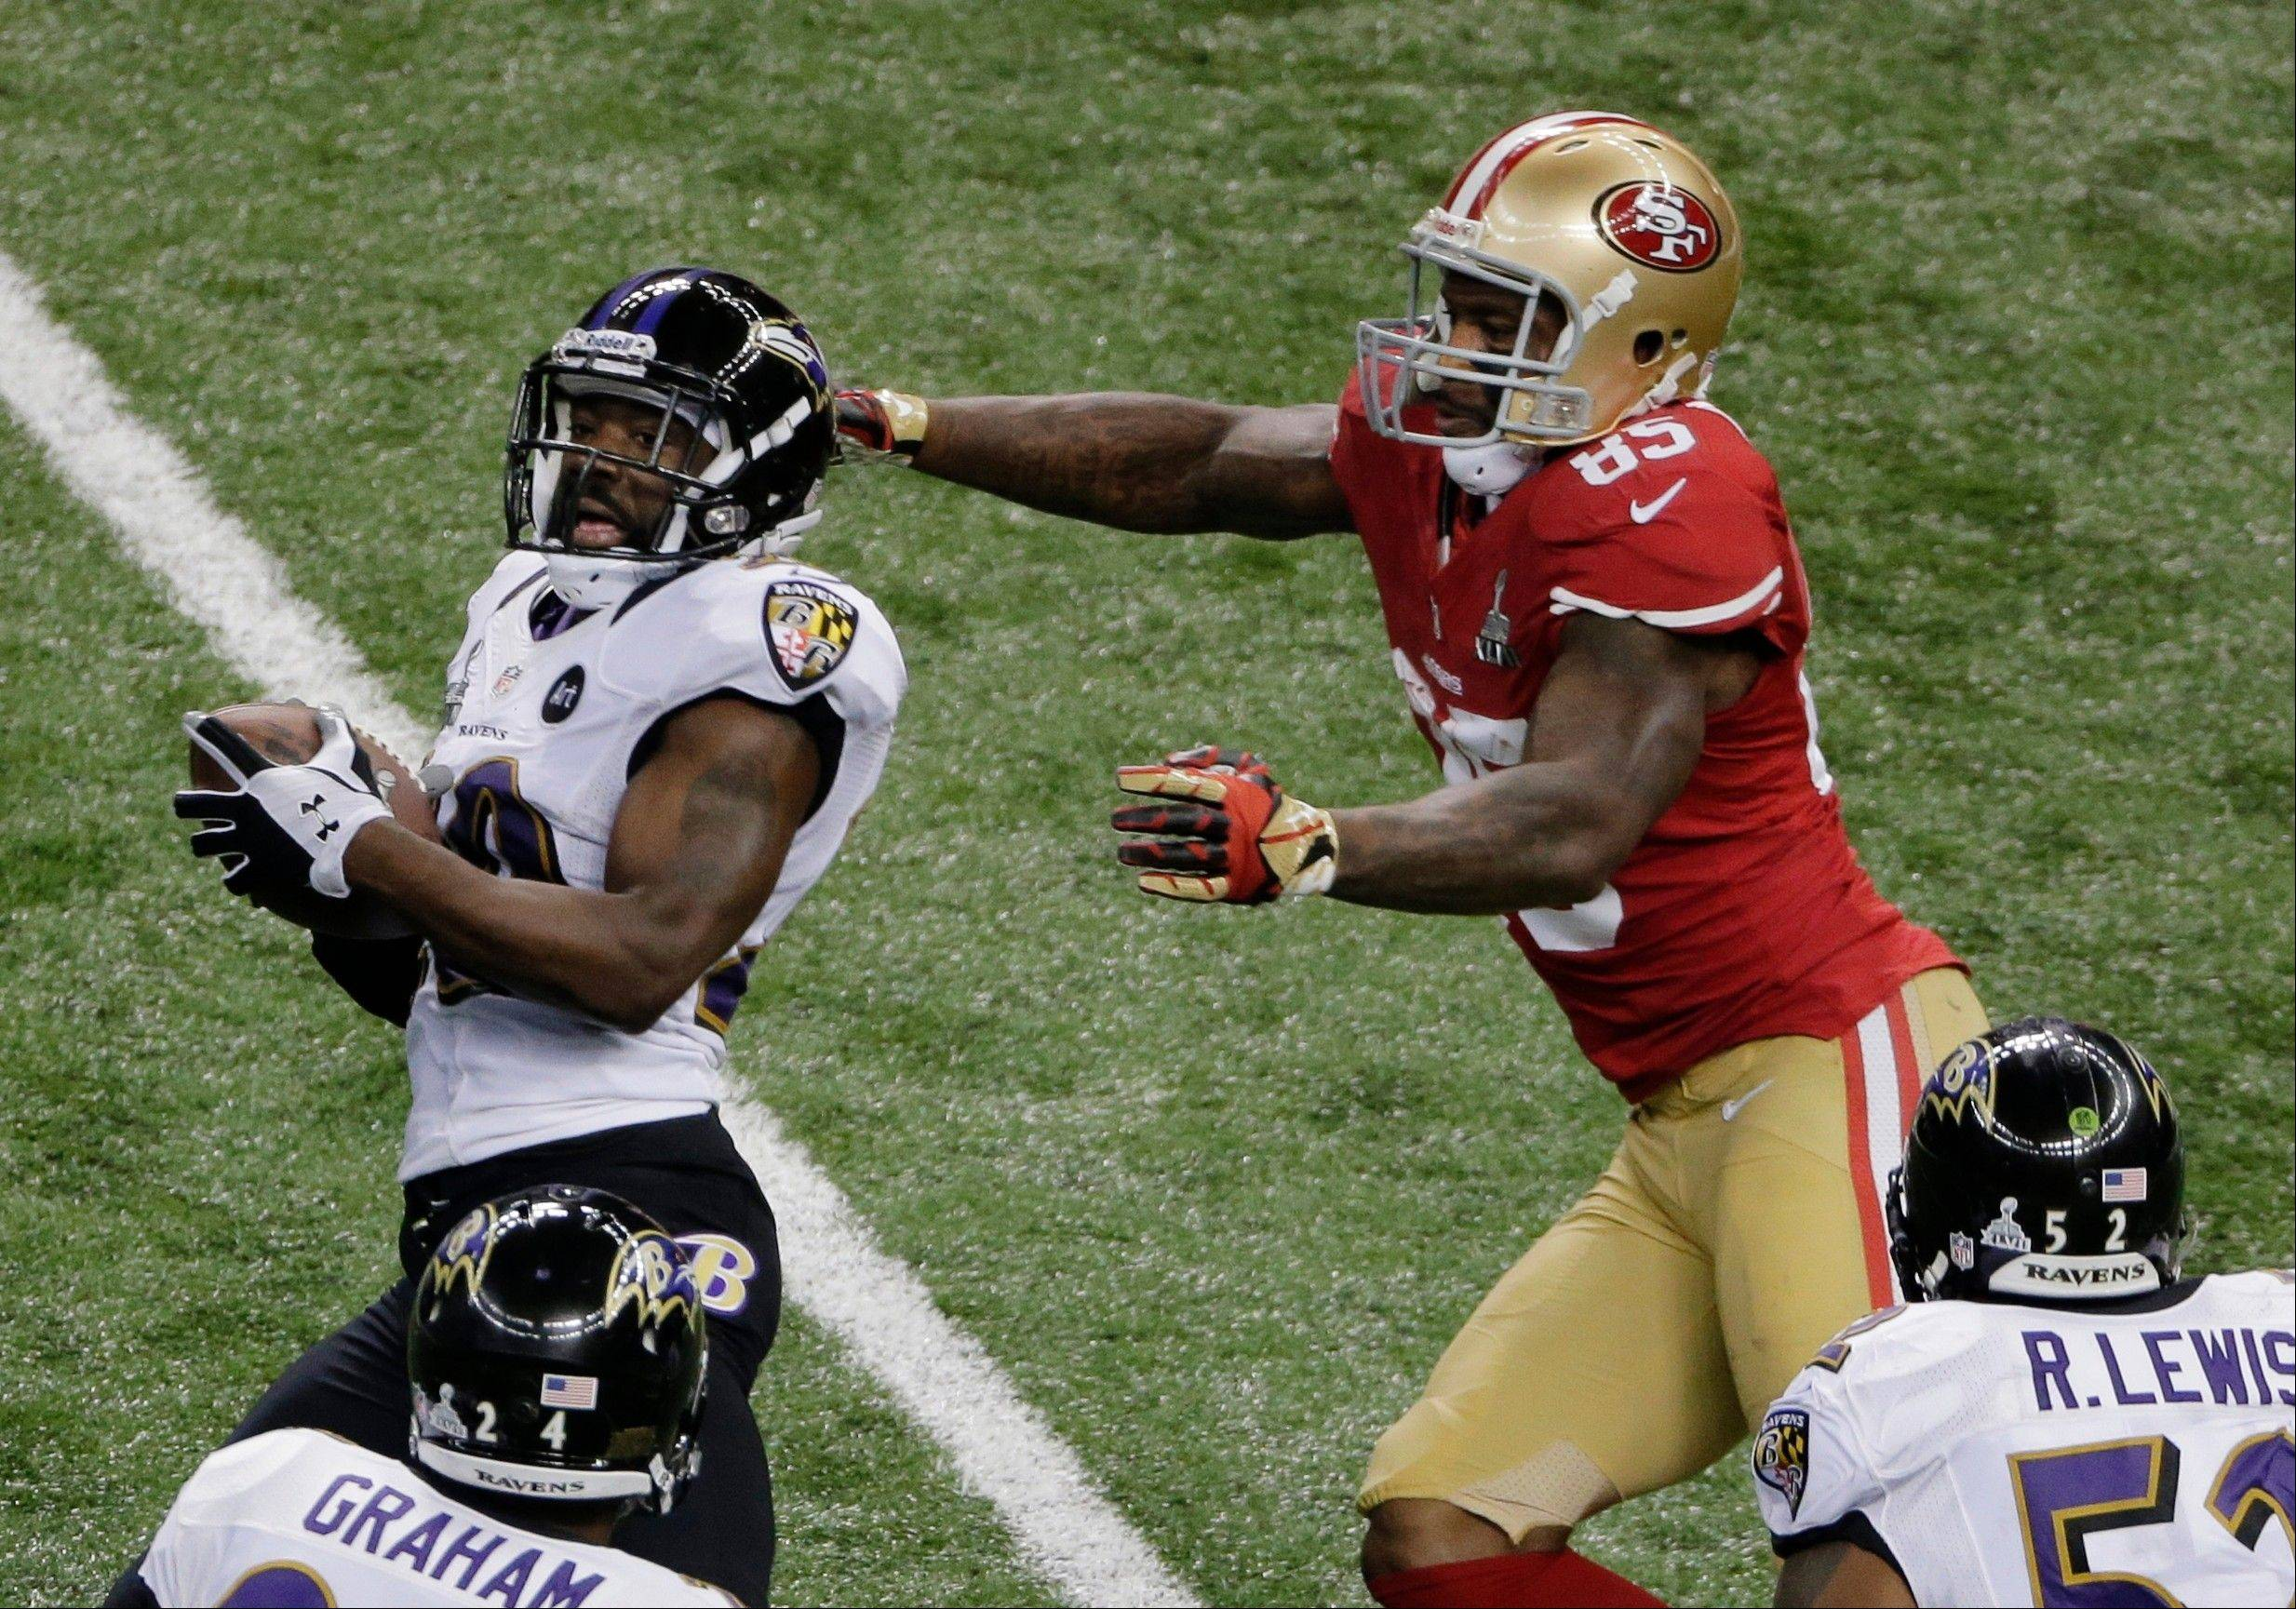 Baltimore Ravens safety Ed Reed (20) is tackled by San Francisco 49ers tight end Vernon Davis (85) after intercepting a pass during the first half.